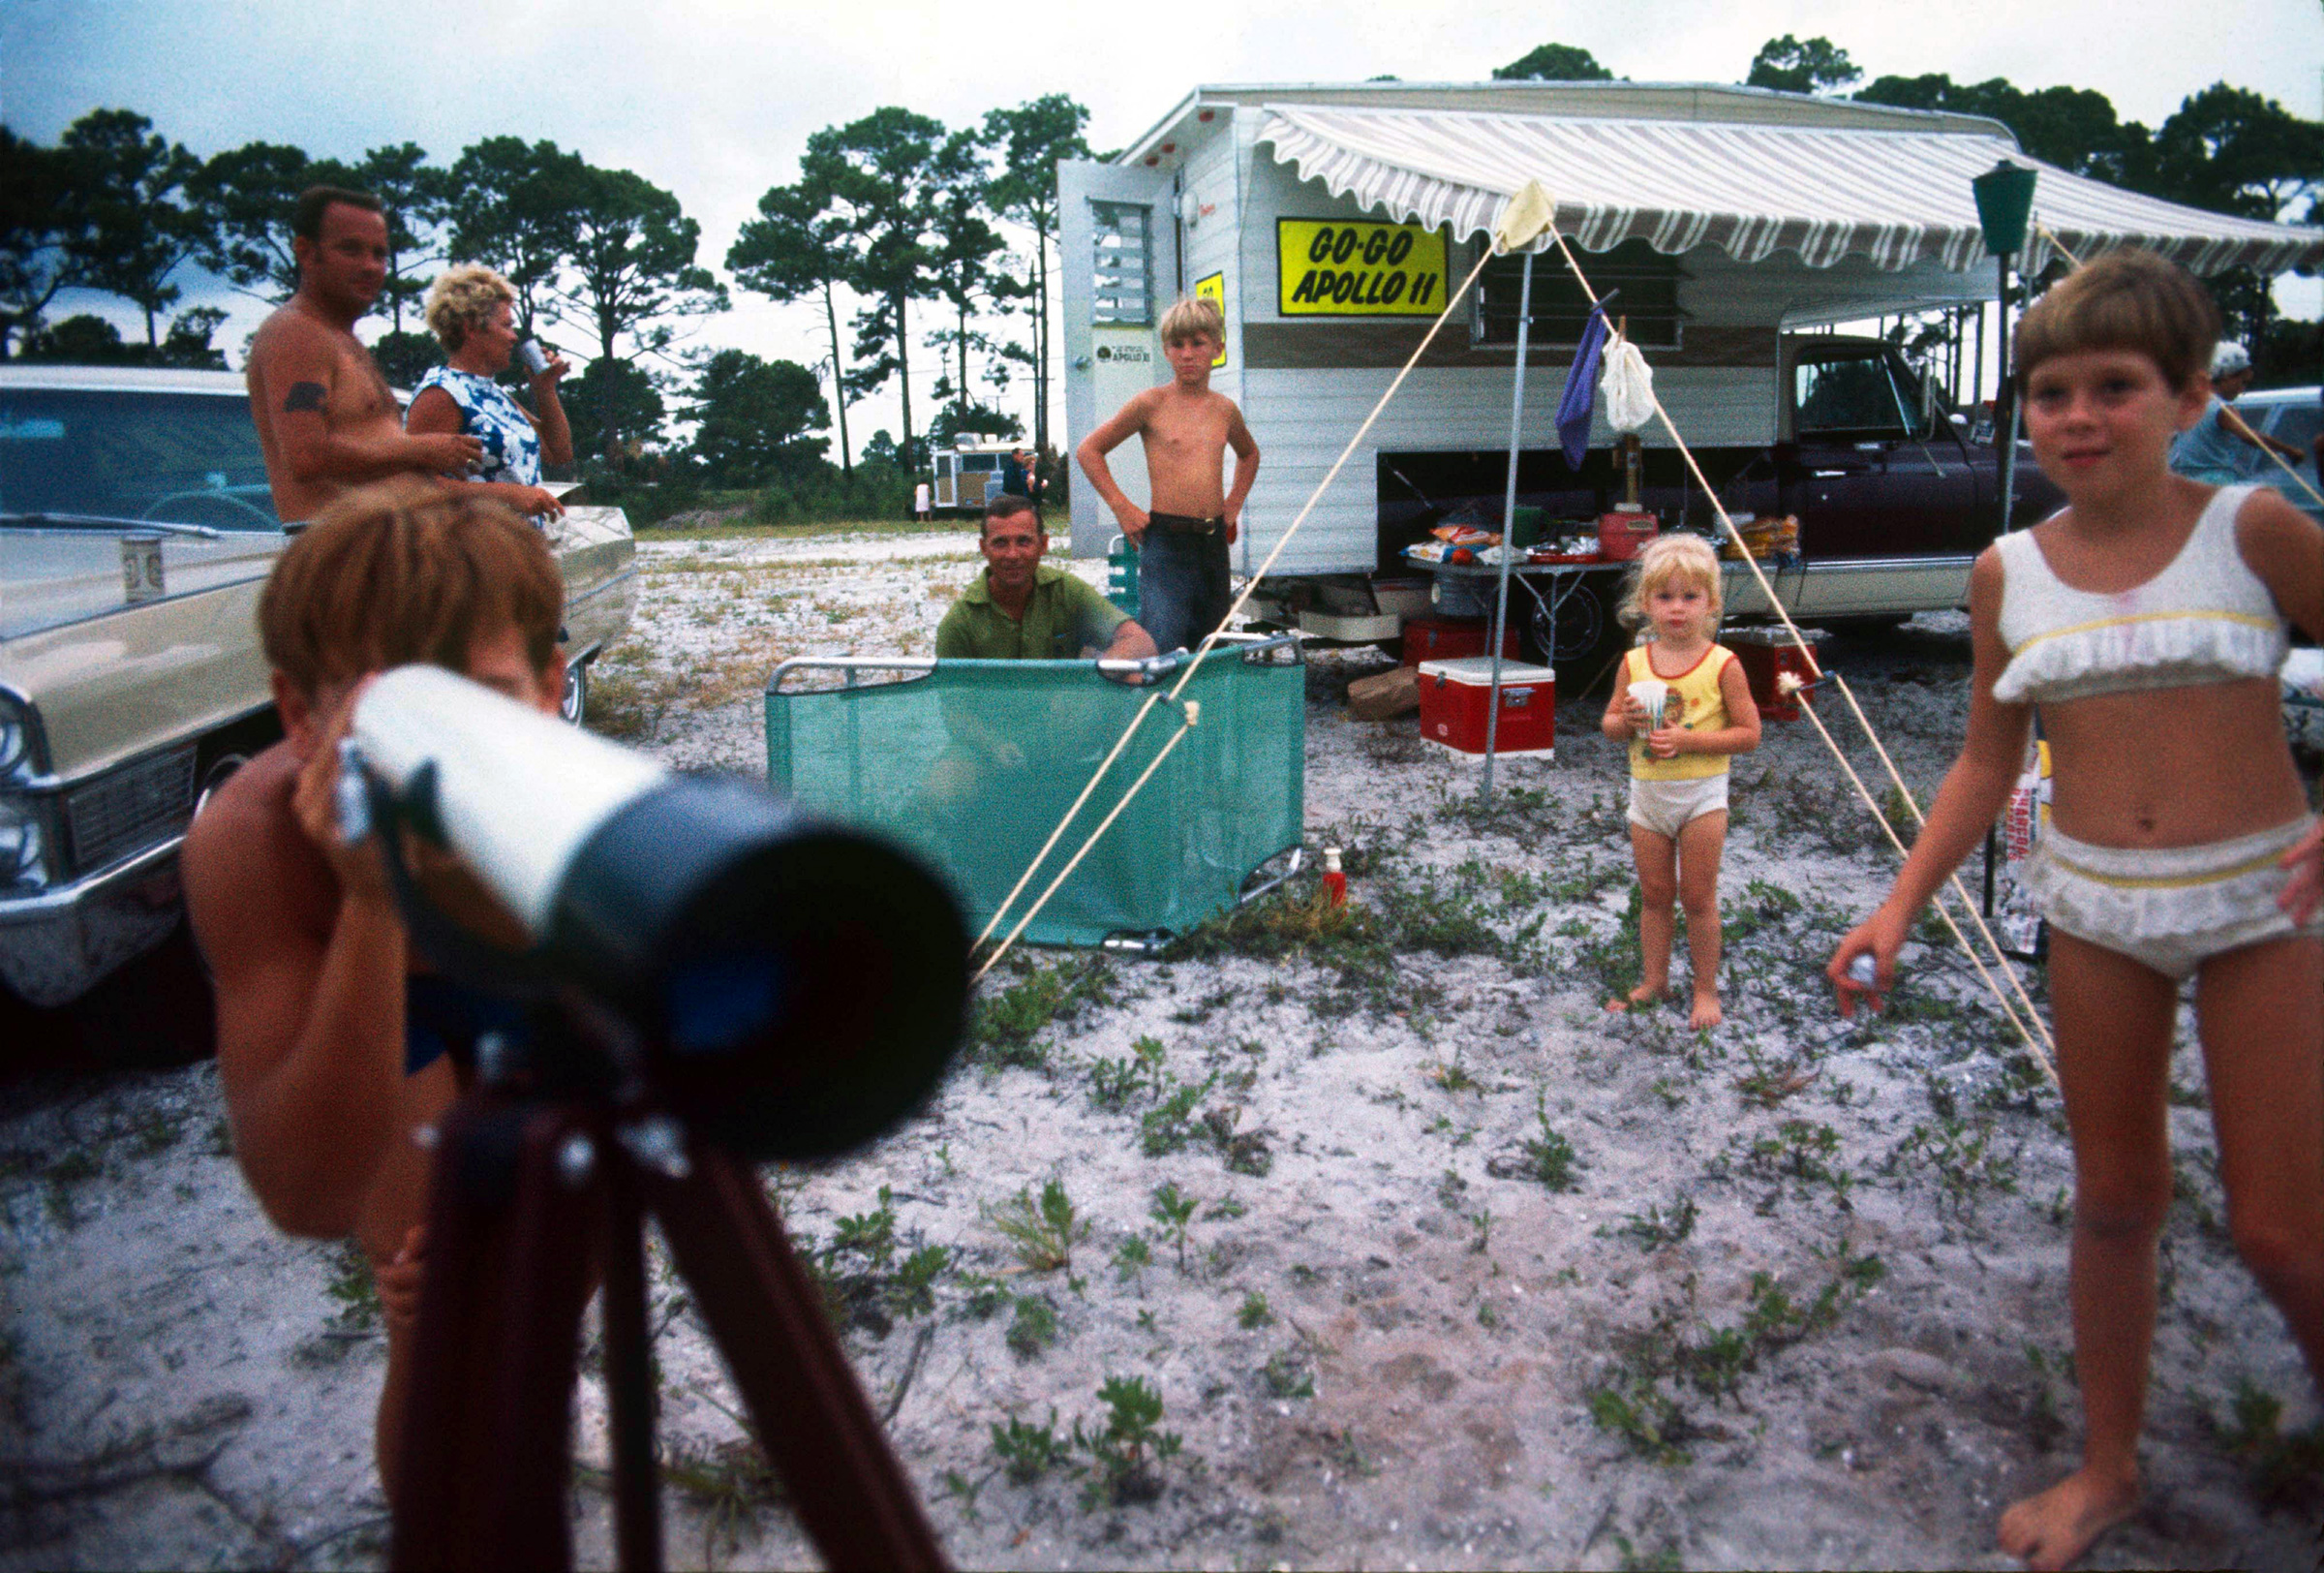 Families camping in Titusville, Florida keep a close watch on the Apollo 11 launch site.